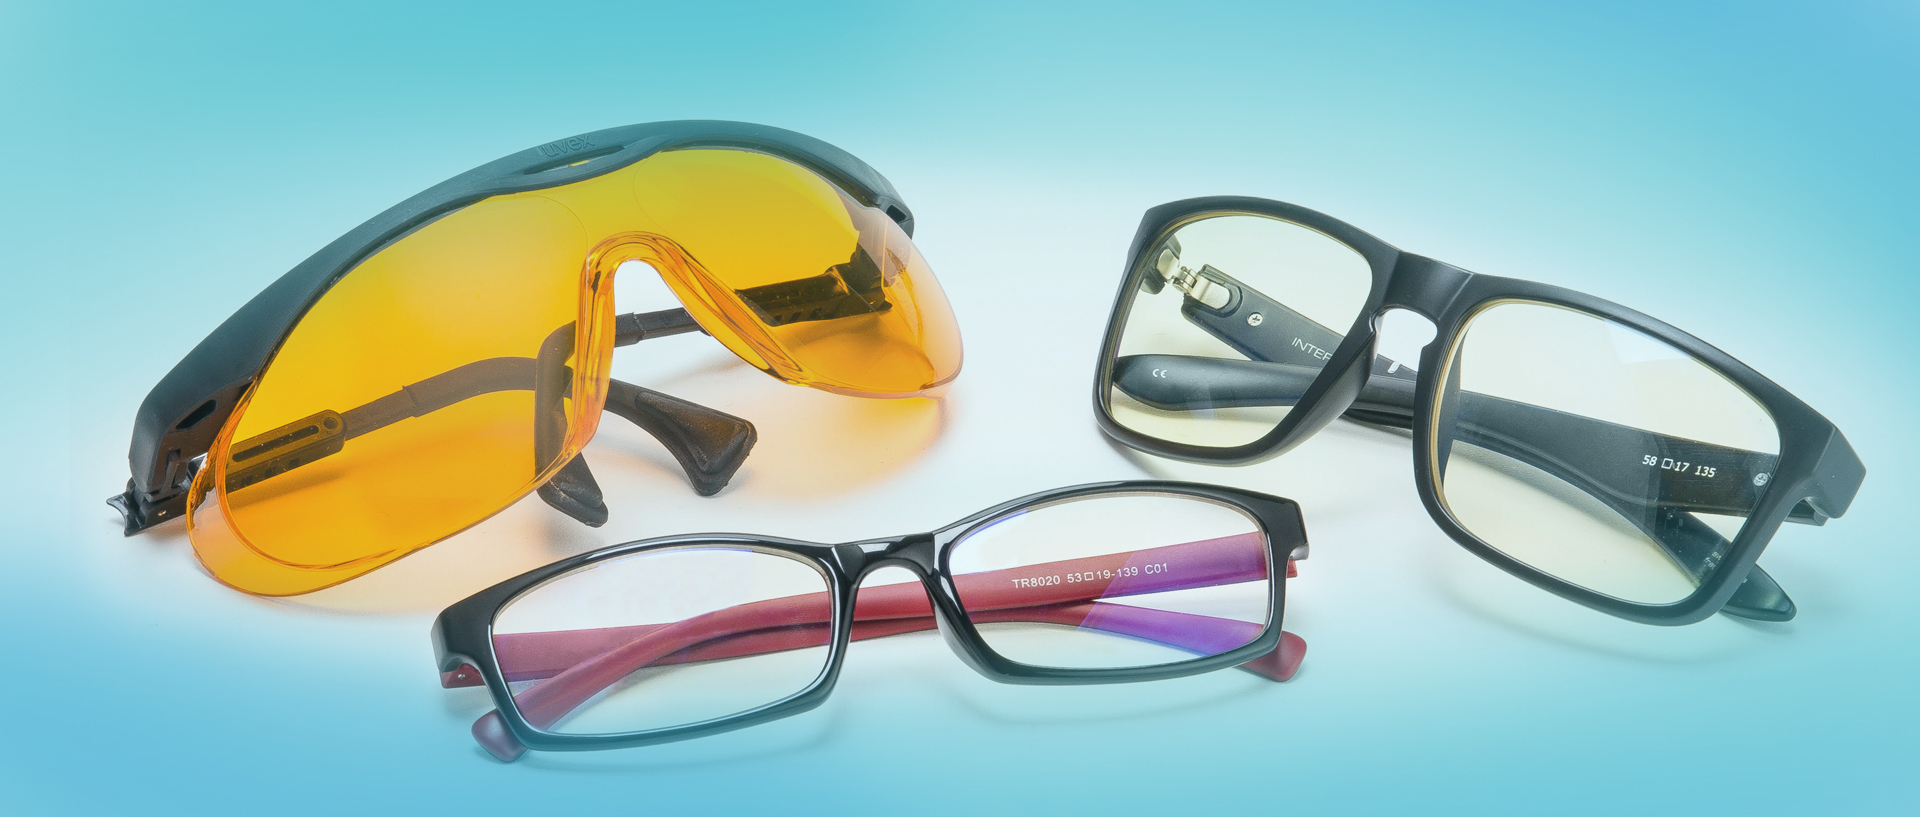 1b68c11de6 3 Blue Blockers Put to the Test - Consumer Reports